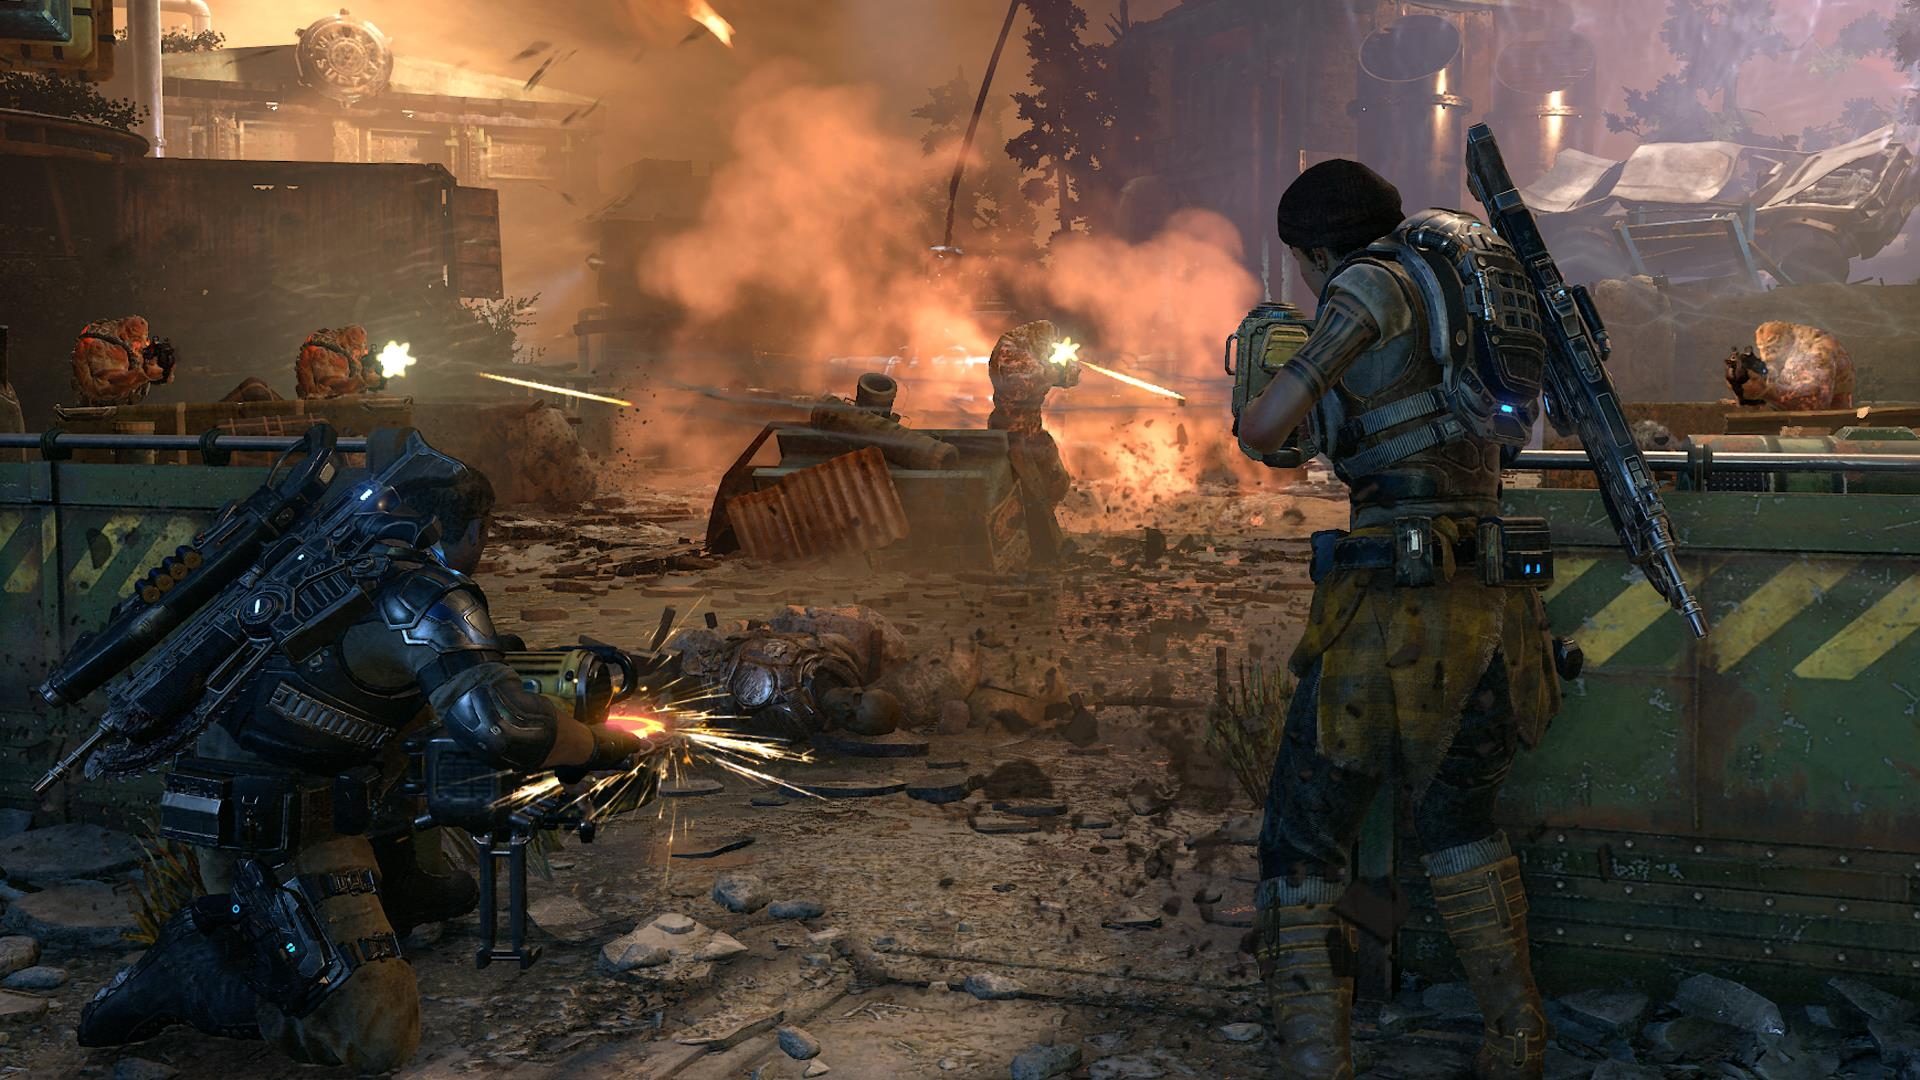 gears-of-war-4-screenshot-48